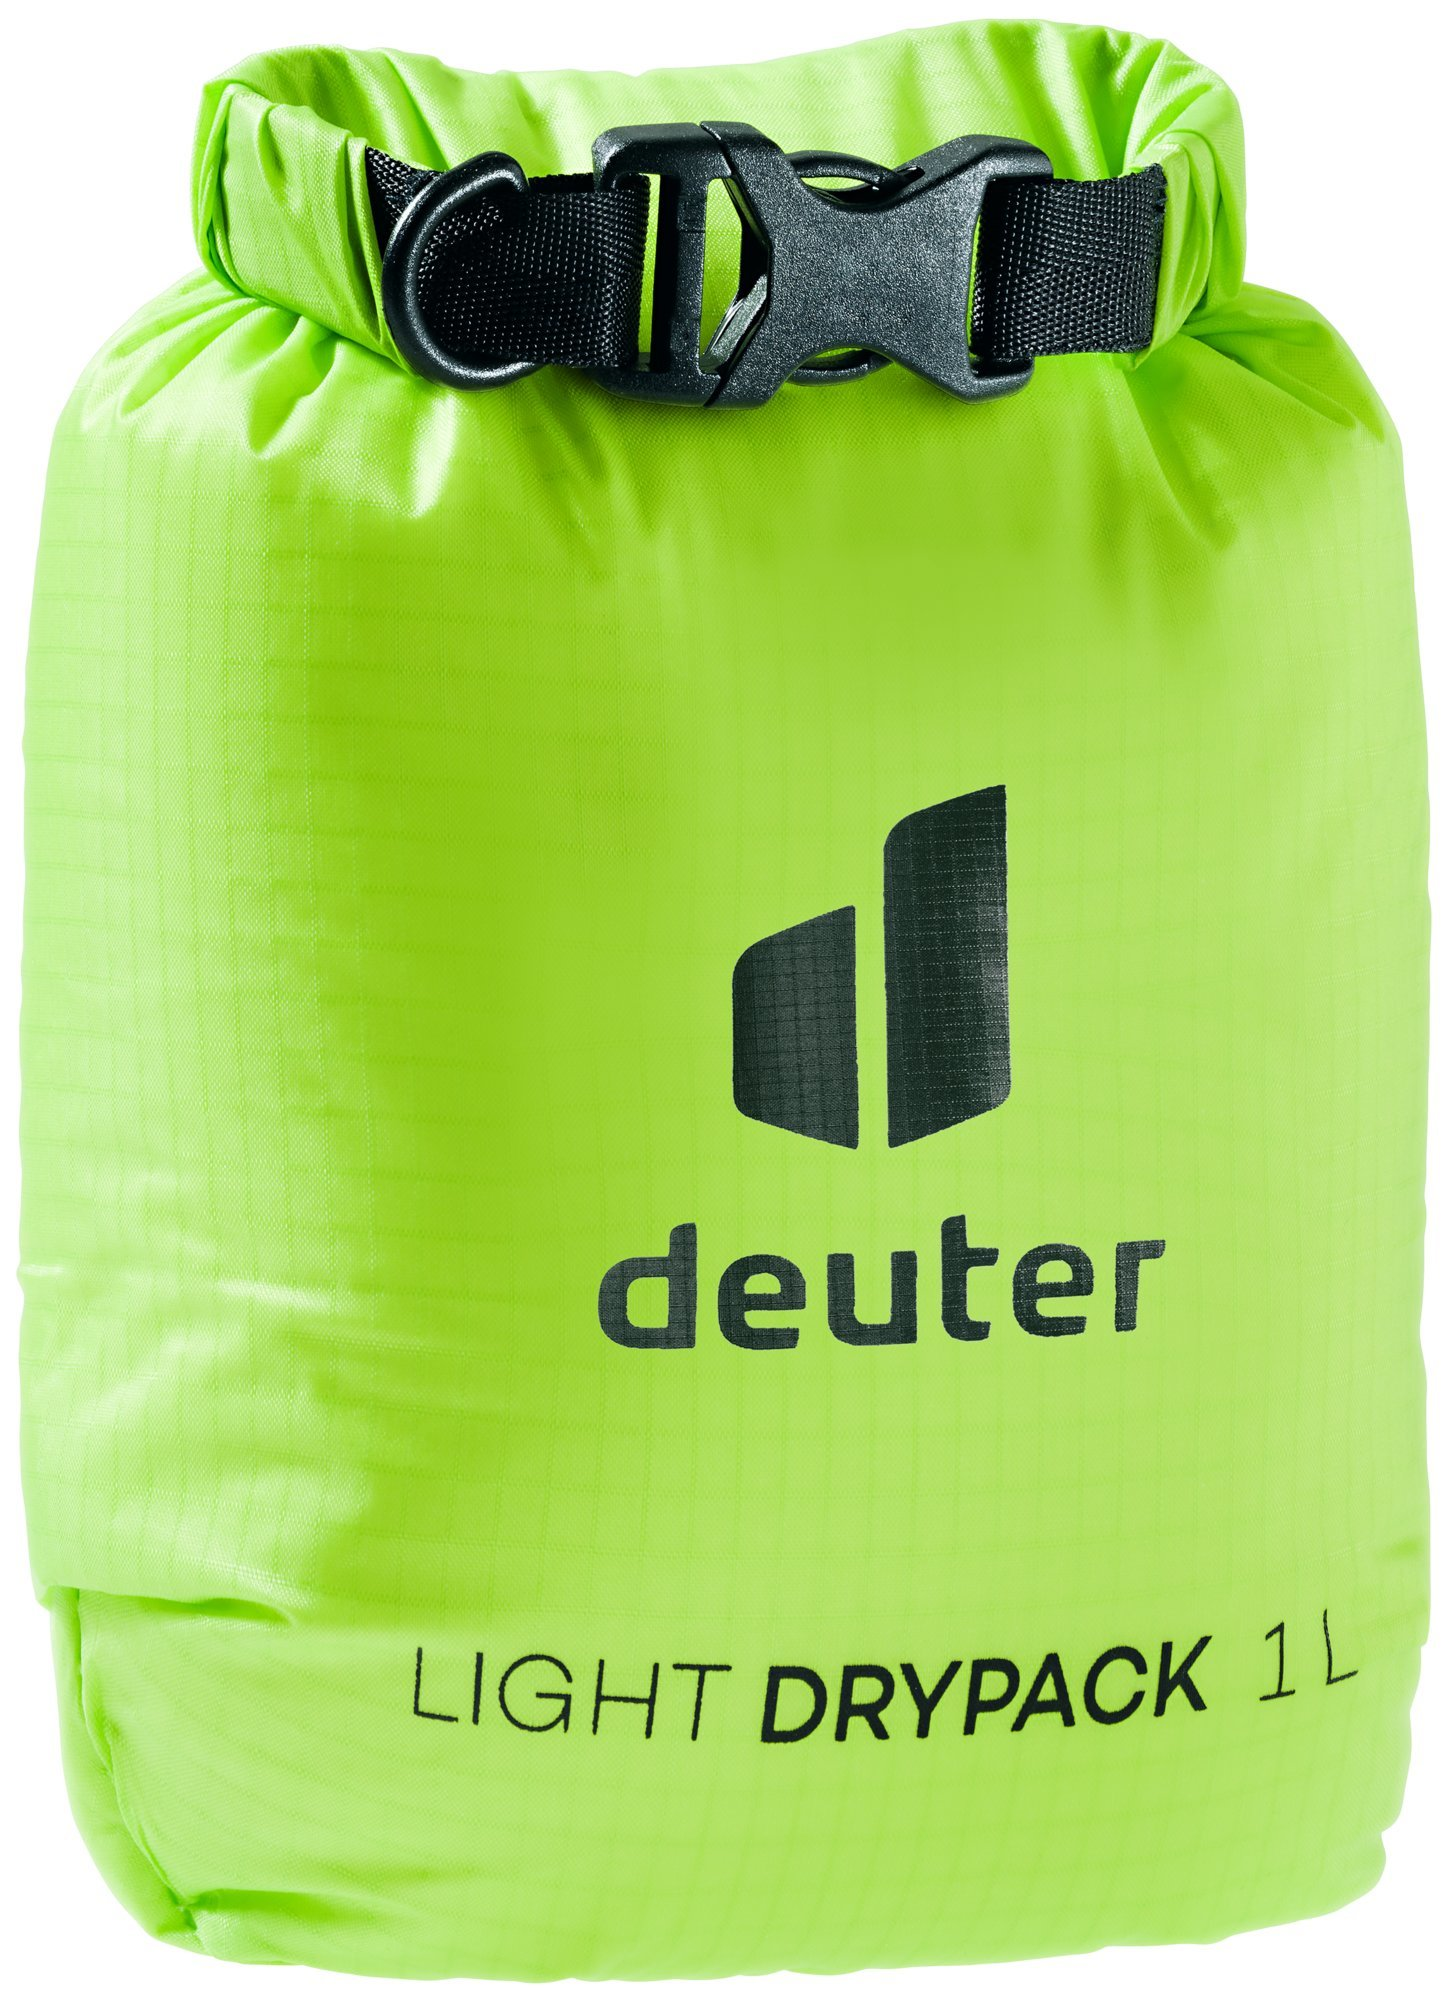 Новинки Гермомешок Deuter Light Drypack 1 (2021) 3940021-8006-LightDrypack1-w20-d0.jpg